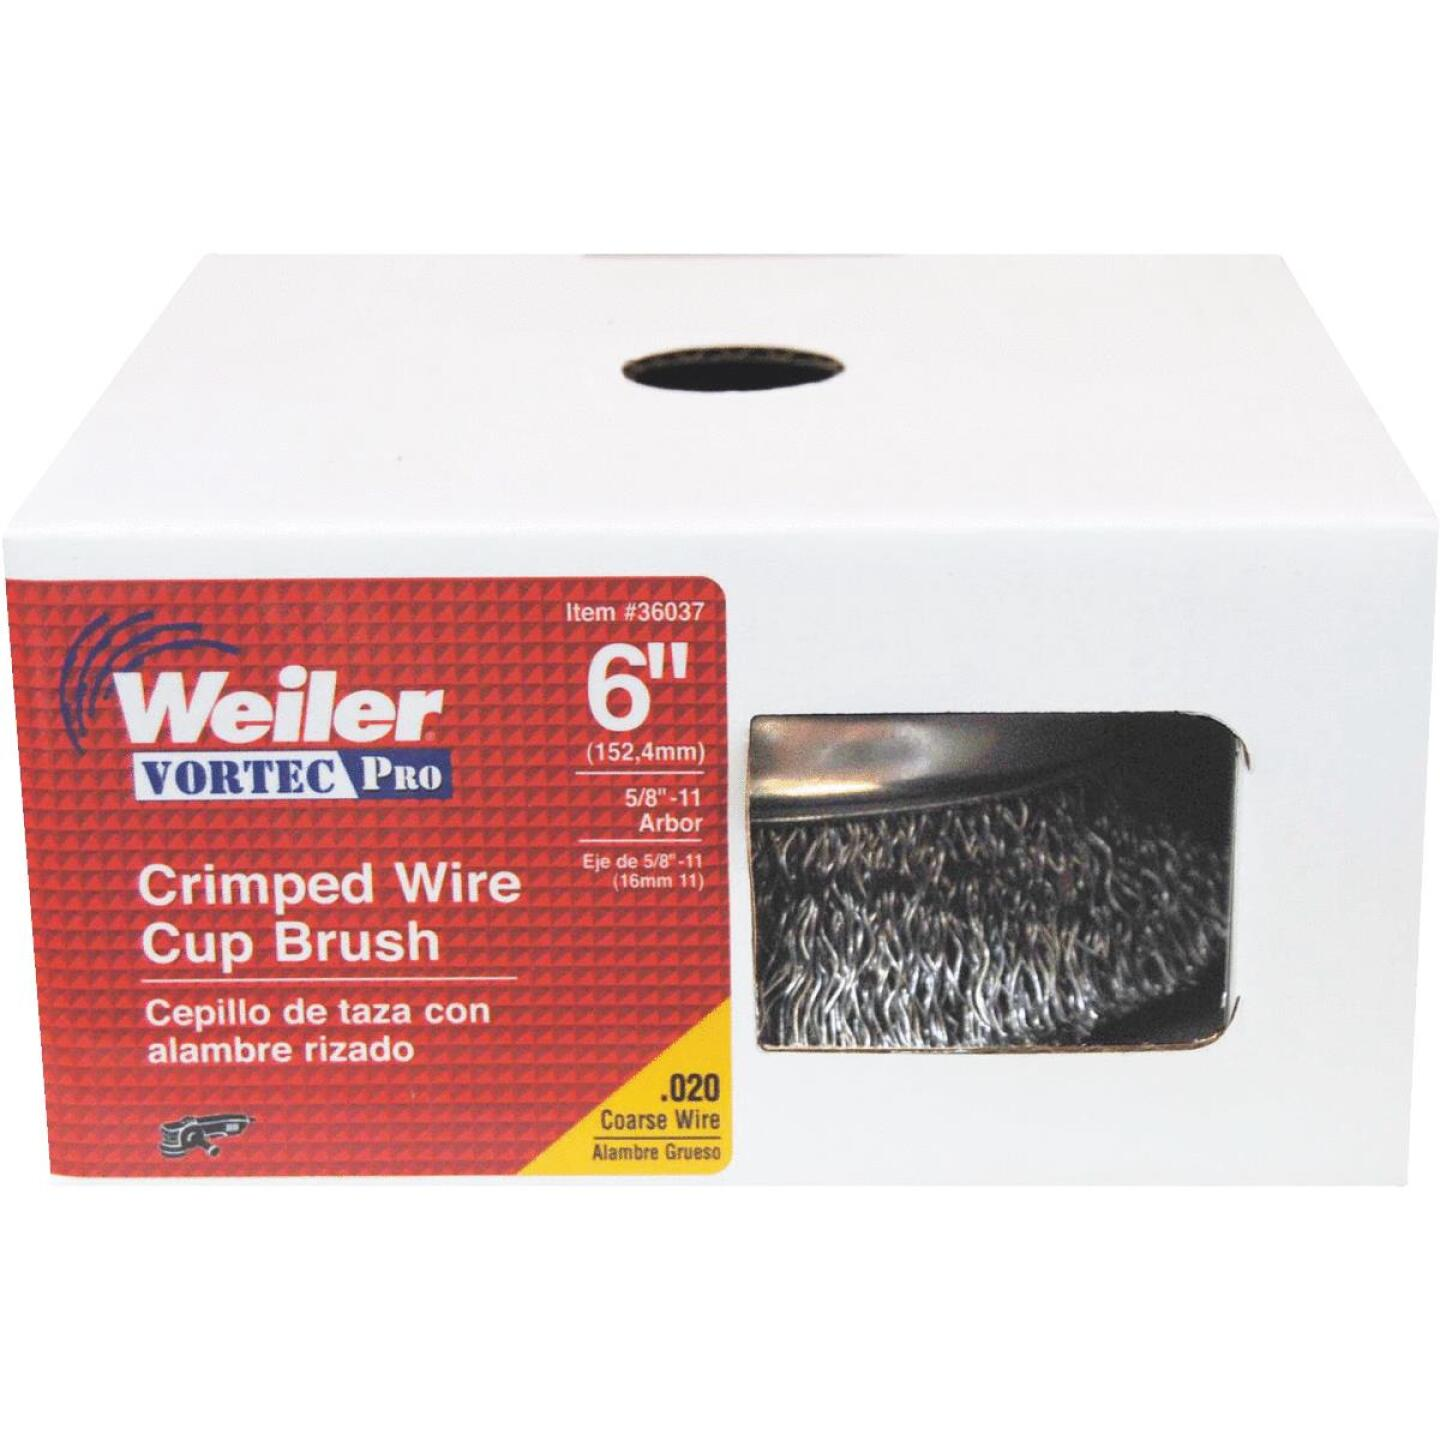 Weiler Vortec 6 In. Crimped 0.02 In. Angle Grinder Wire Brush Image 2